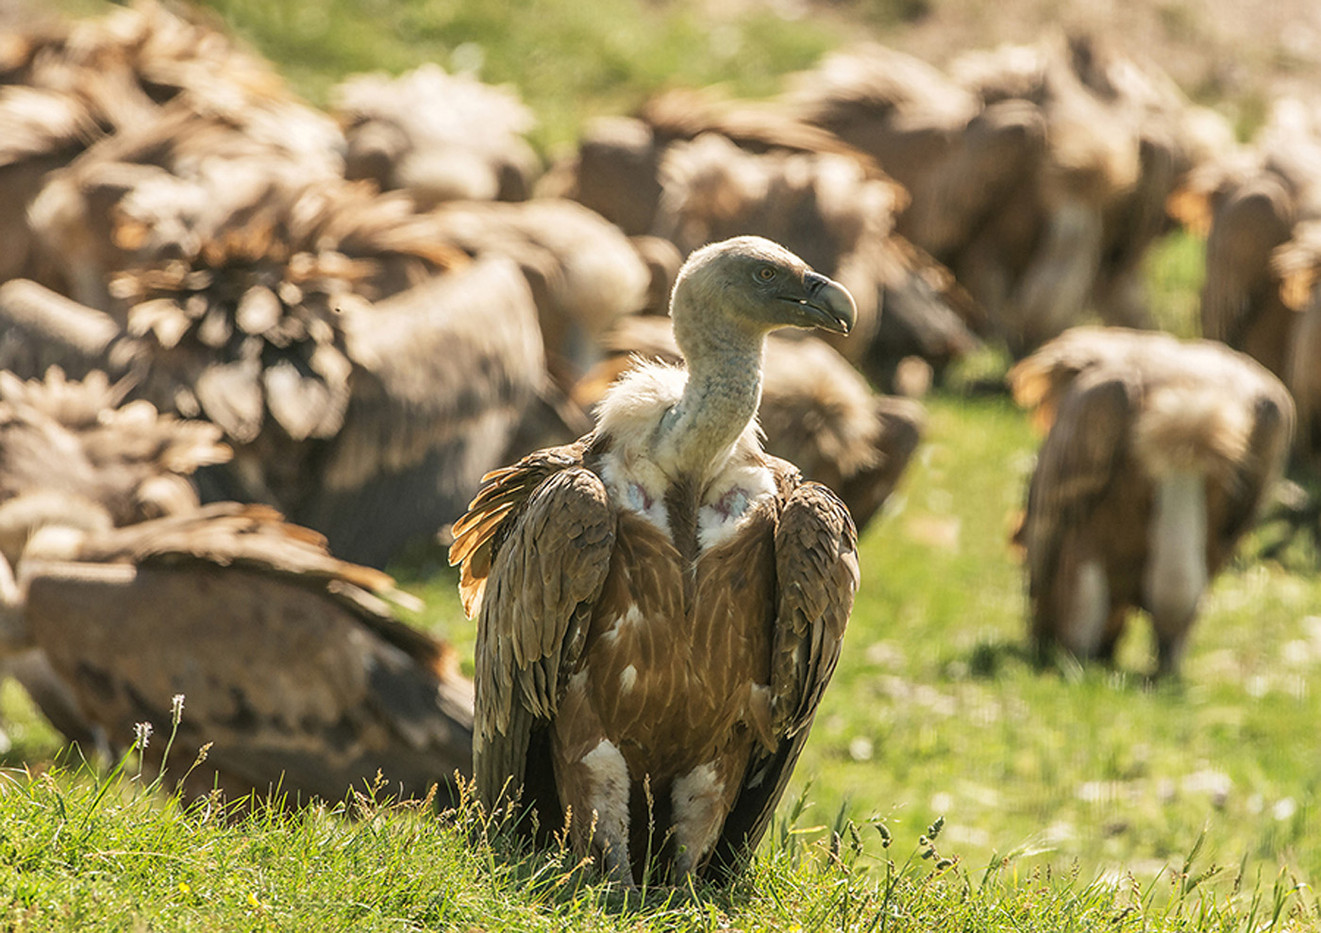 GROUP 1 16 DIGESTIVE MOMENT THE GRIFFON VULTURE by Len Kemp